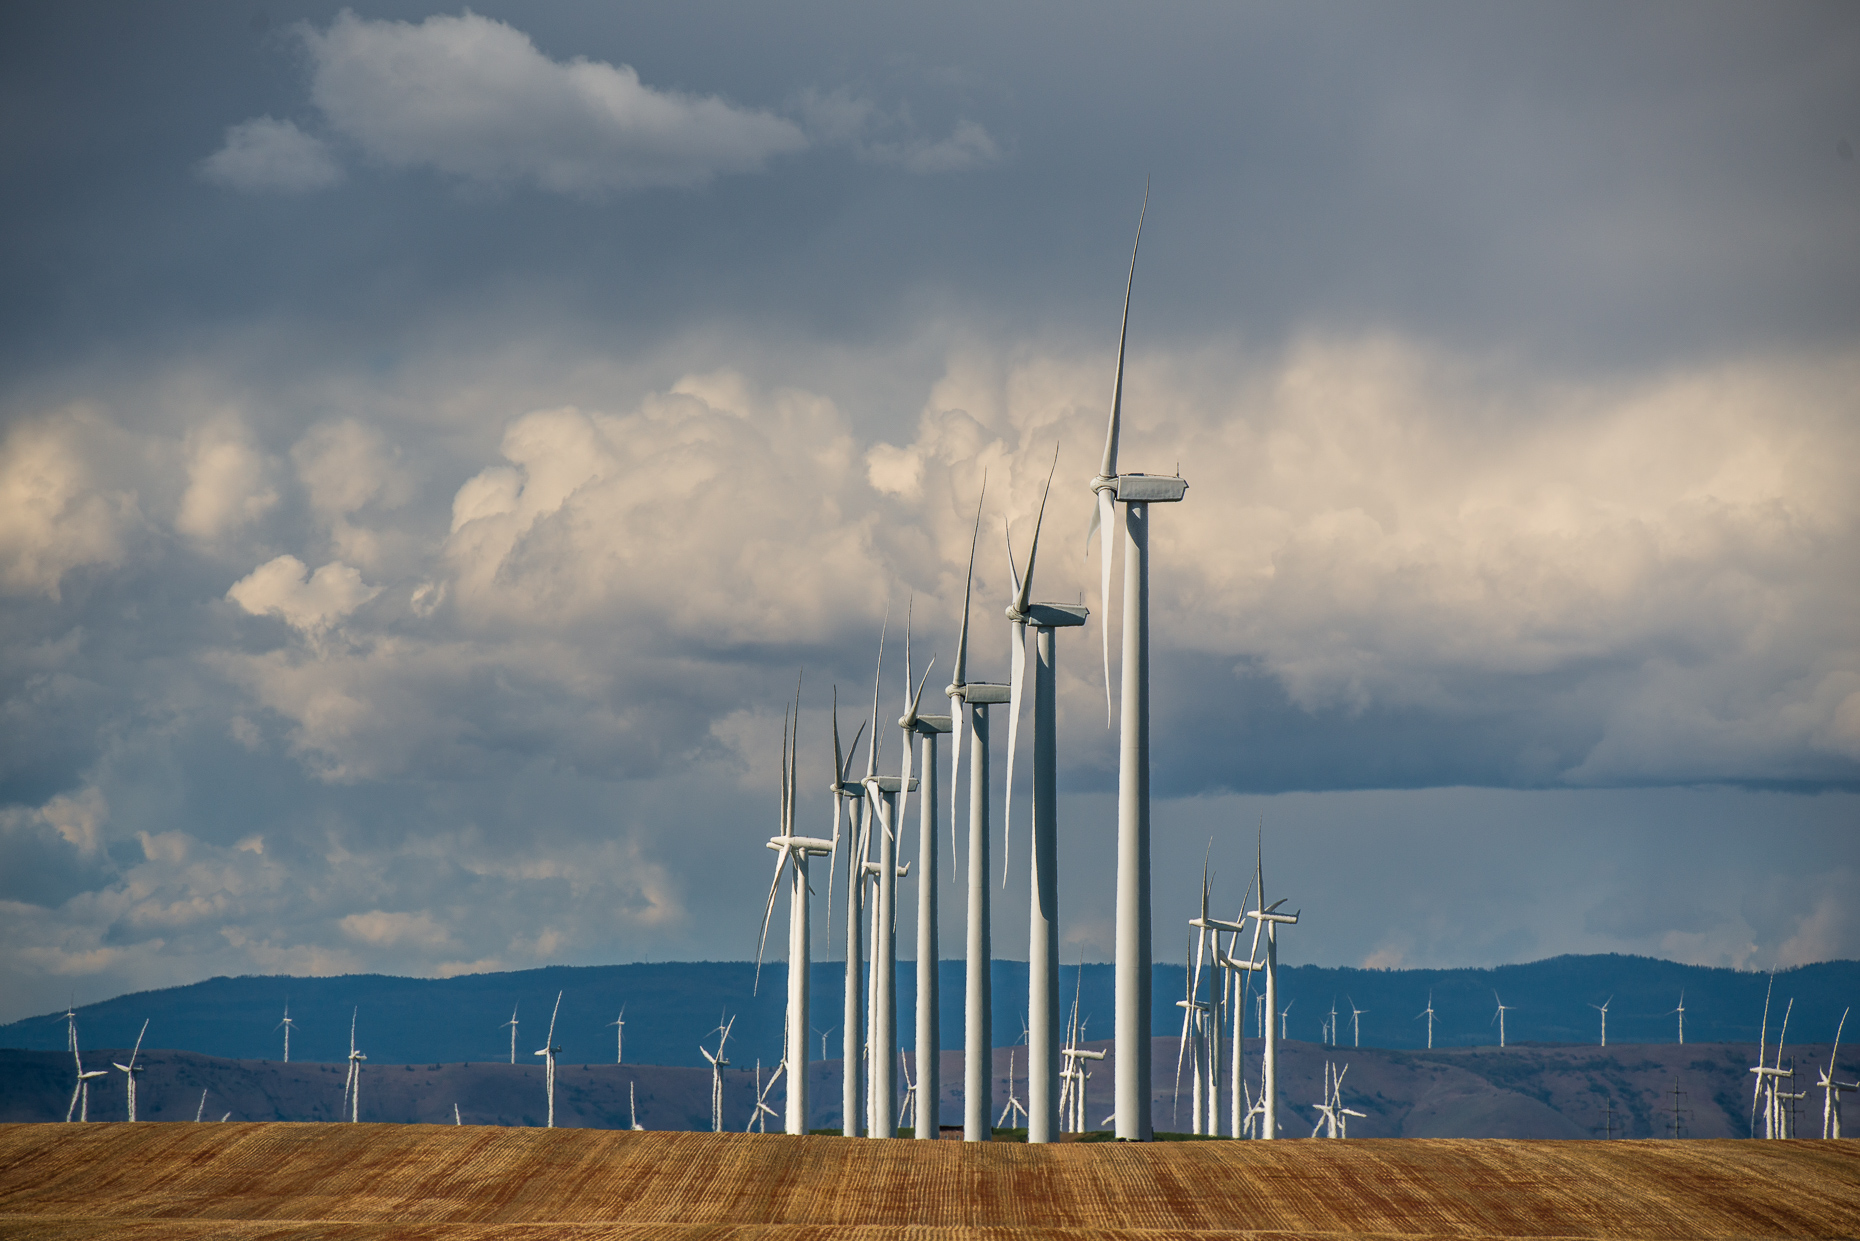 Oregon Renewable Energy | Wind Turbine Photography